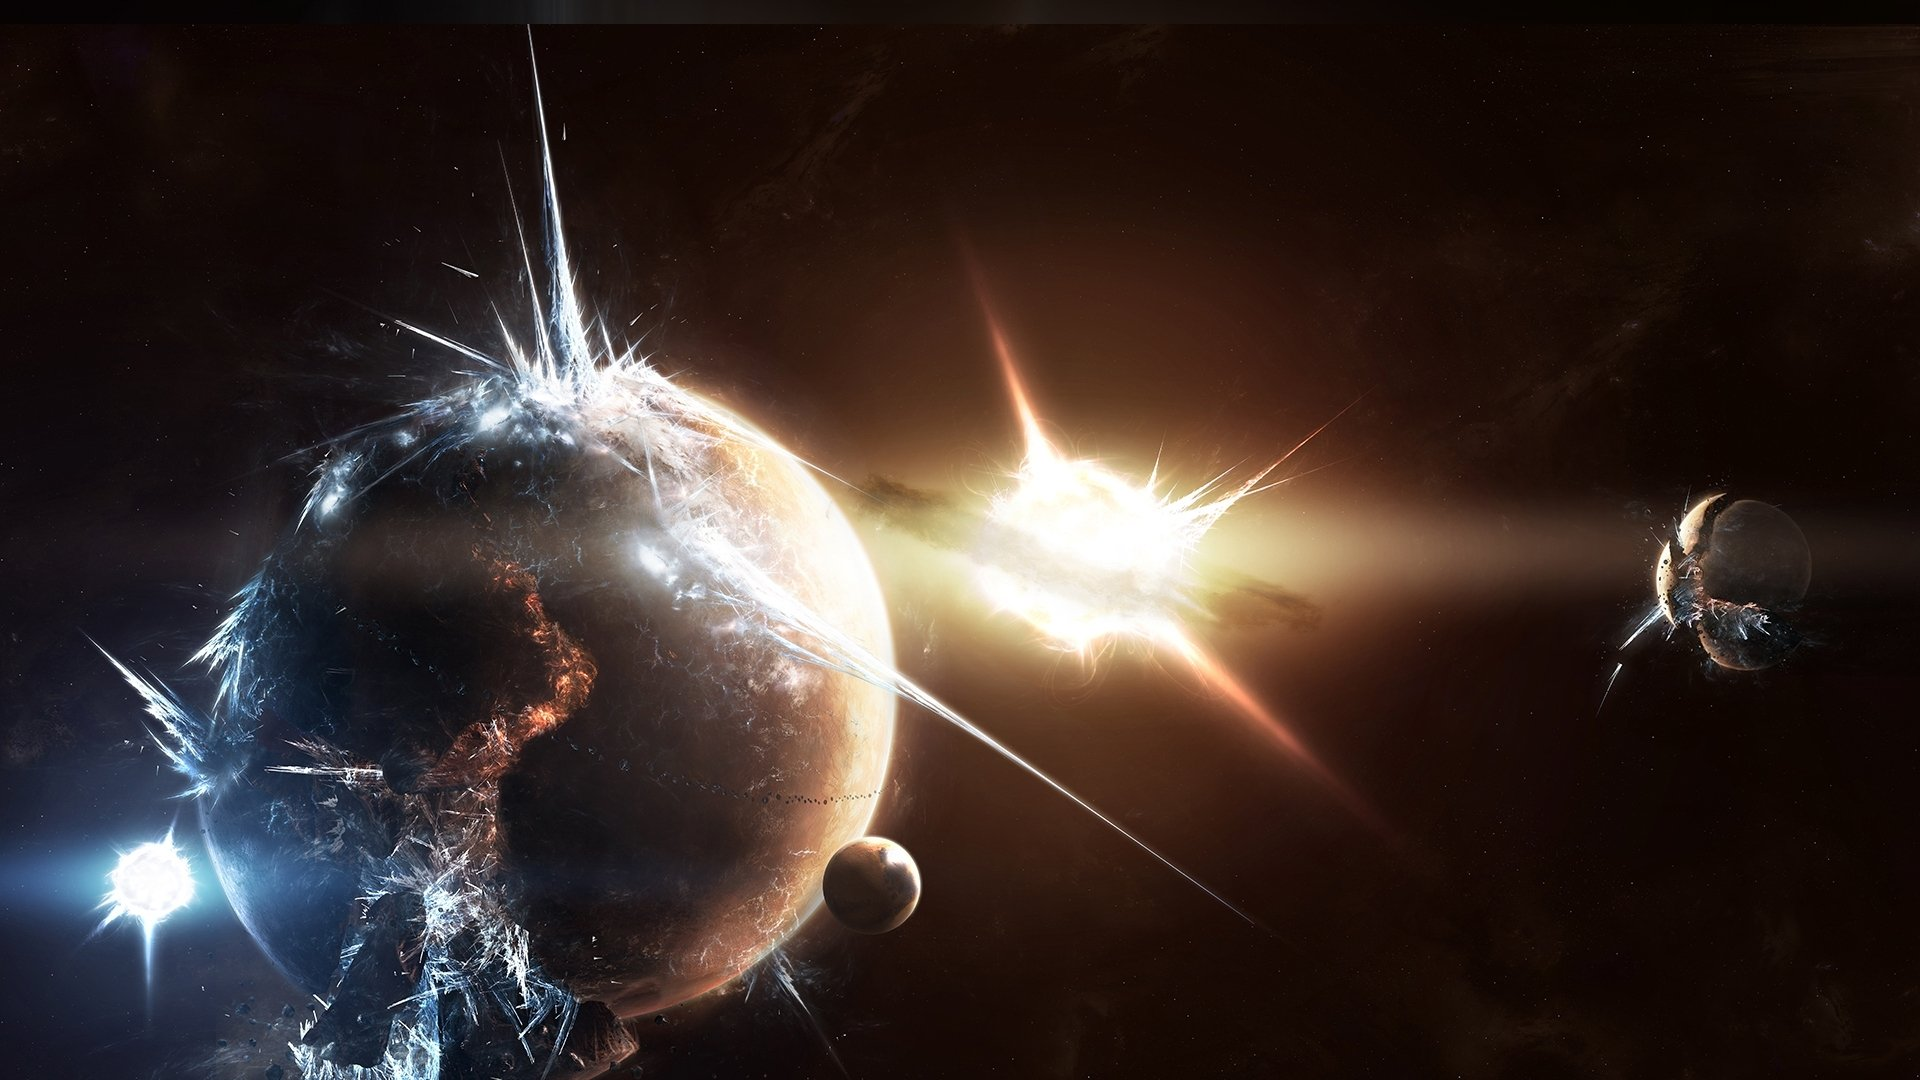 Sci Fi - Explosion  Water Universe Planet Star Sun Space Wallpaper